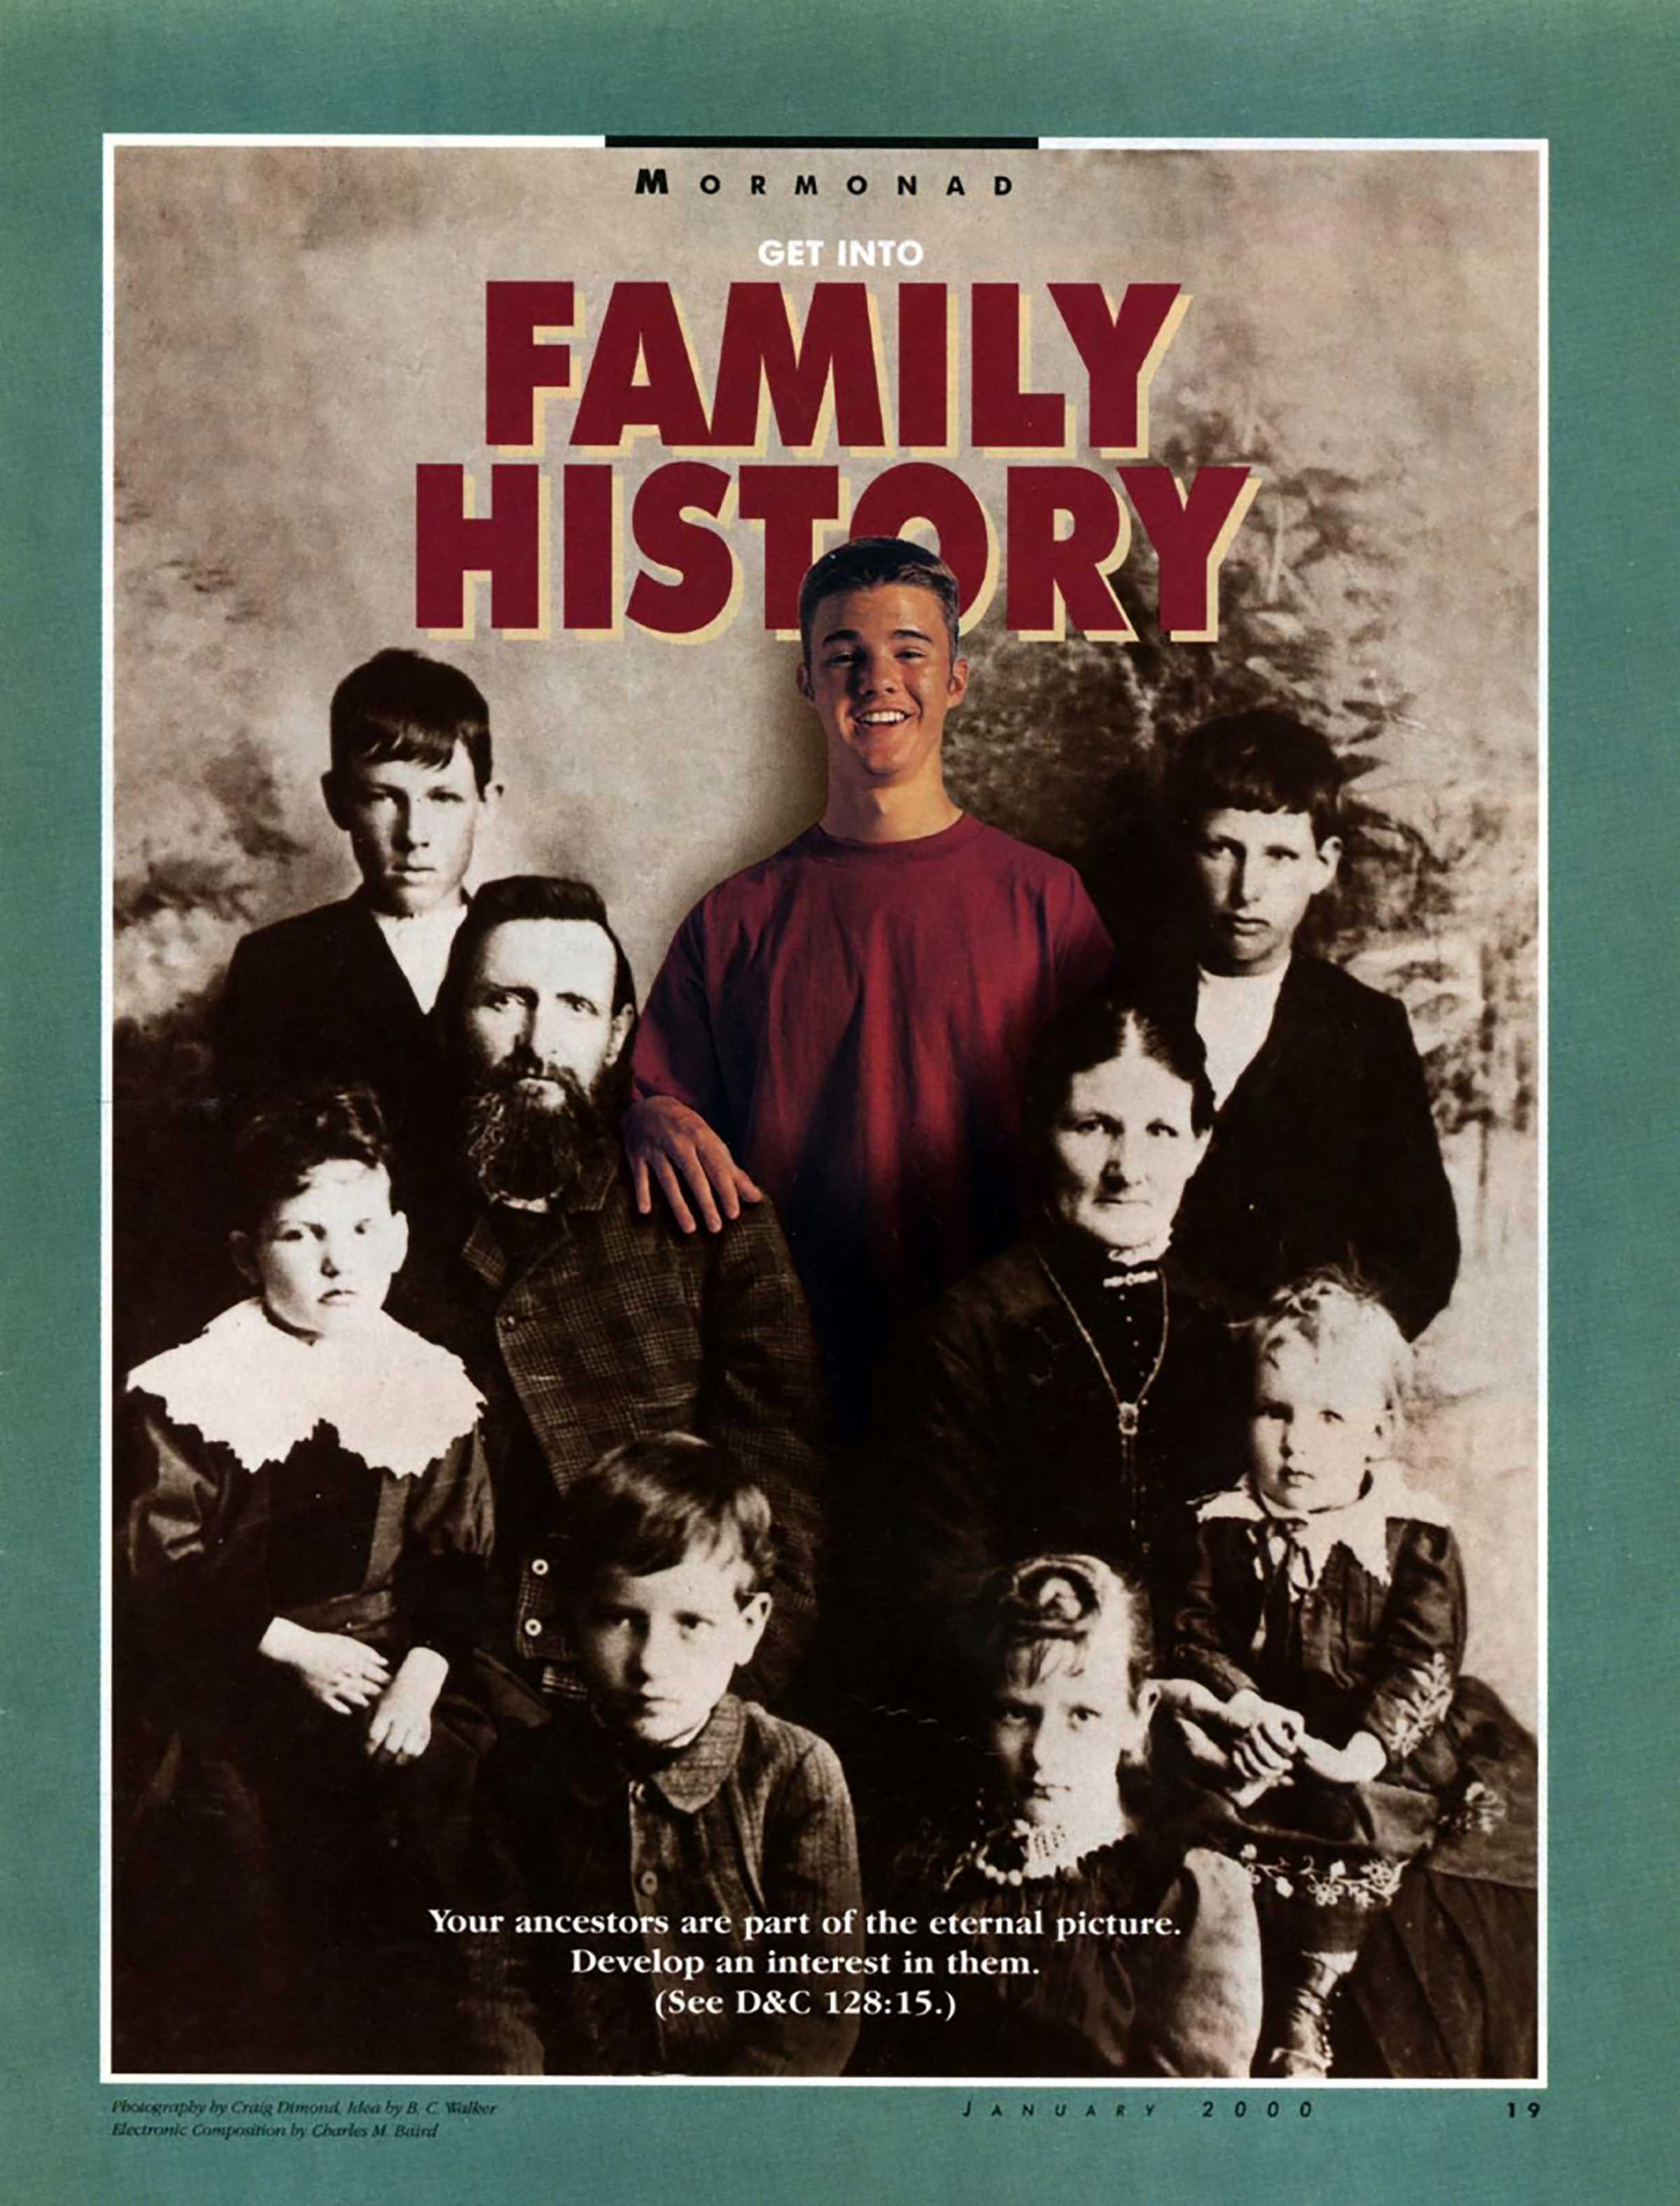 Get into Family History